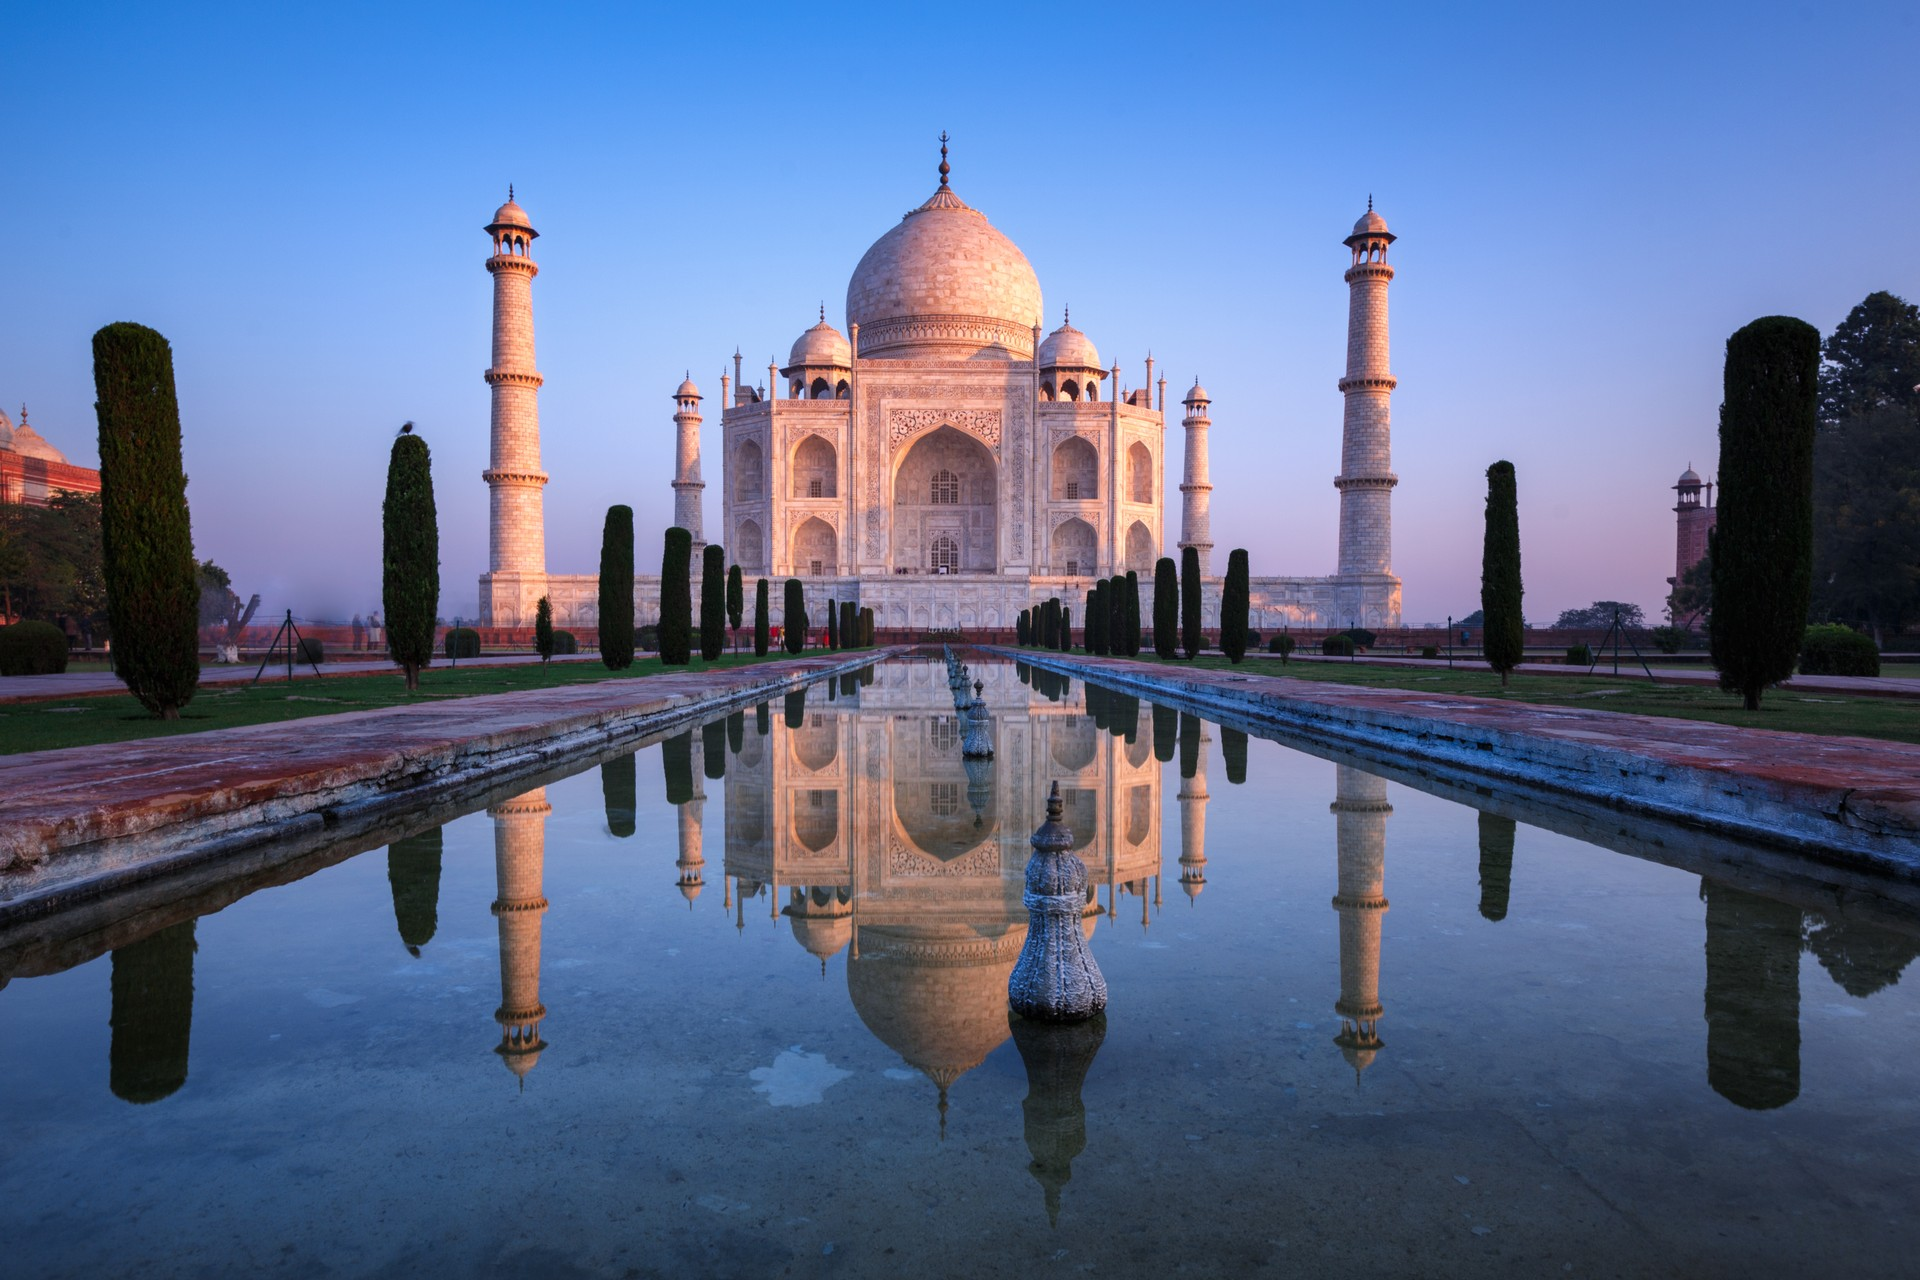 India's Taj Mahal is over 400 years old